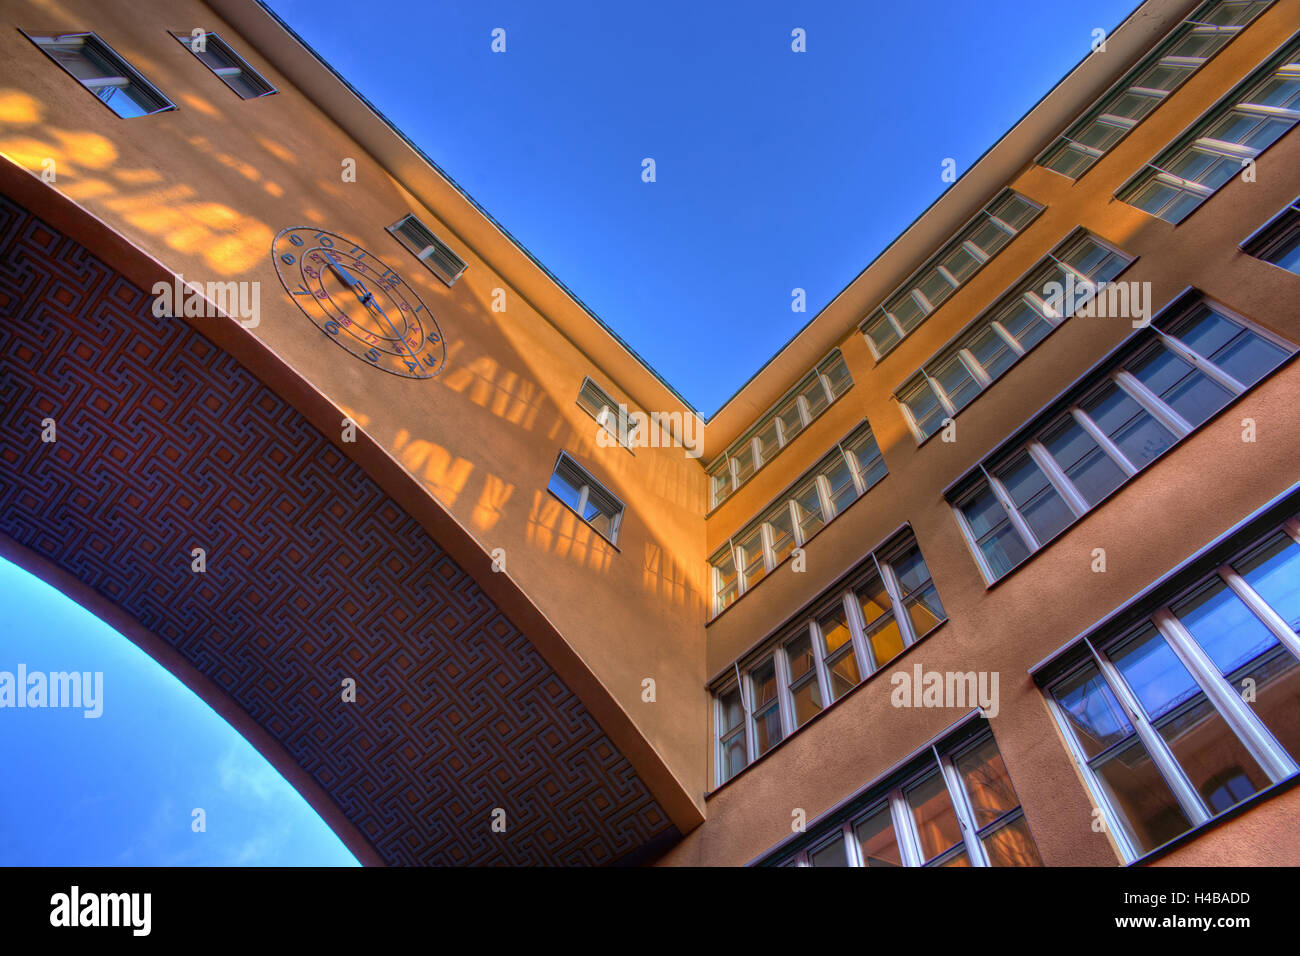 Architecture in the area around the main station Stockholm, Sweden - Stock Image